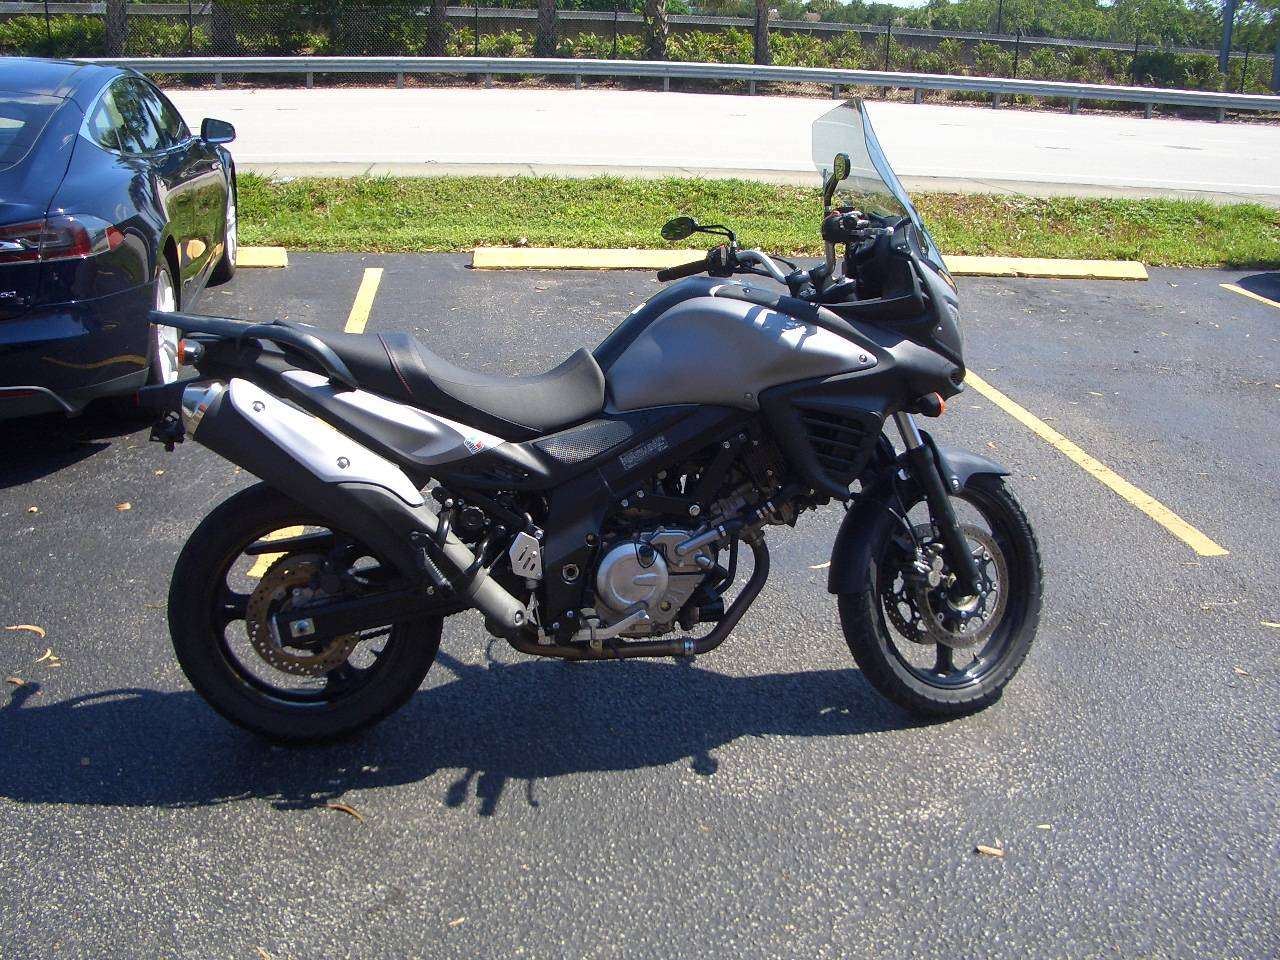 2015 Suzuki V-Strom 650 ABS Adventure in Fort Lauderdale, Florida - Photo 5